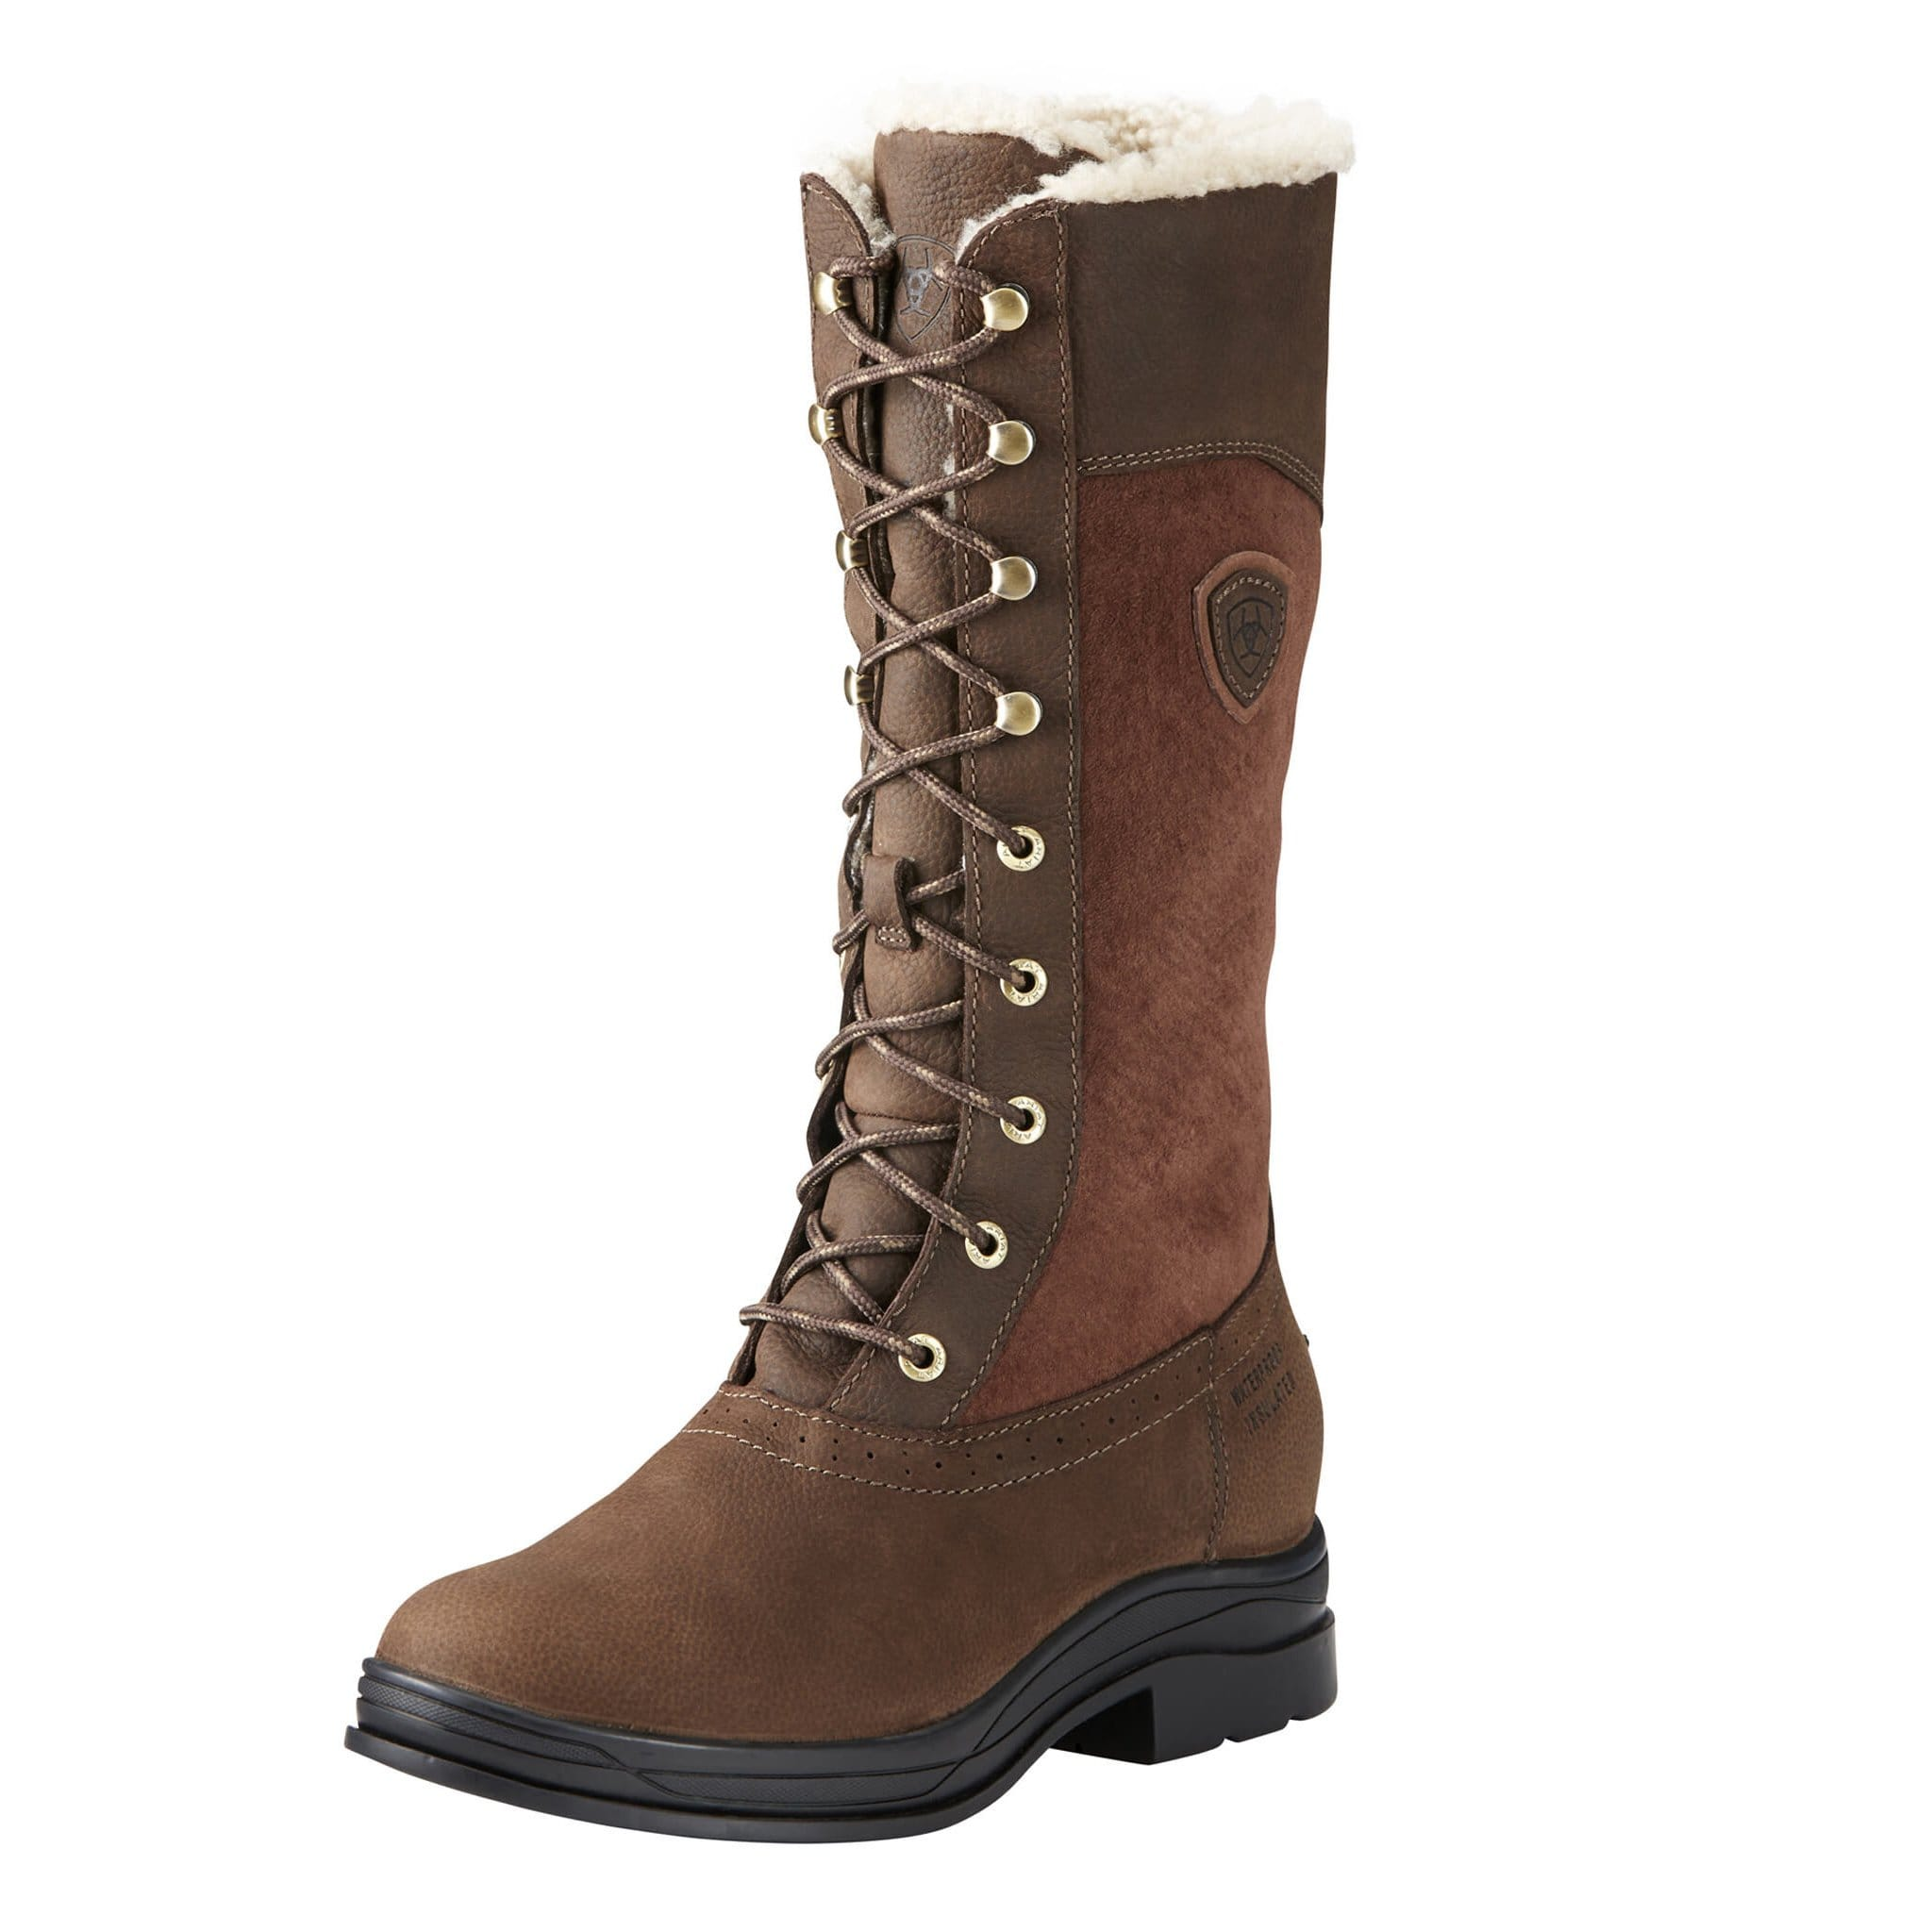 Ariat Wythburn H2O Insulated Boots Lace Up Front 10021530.